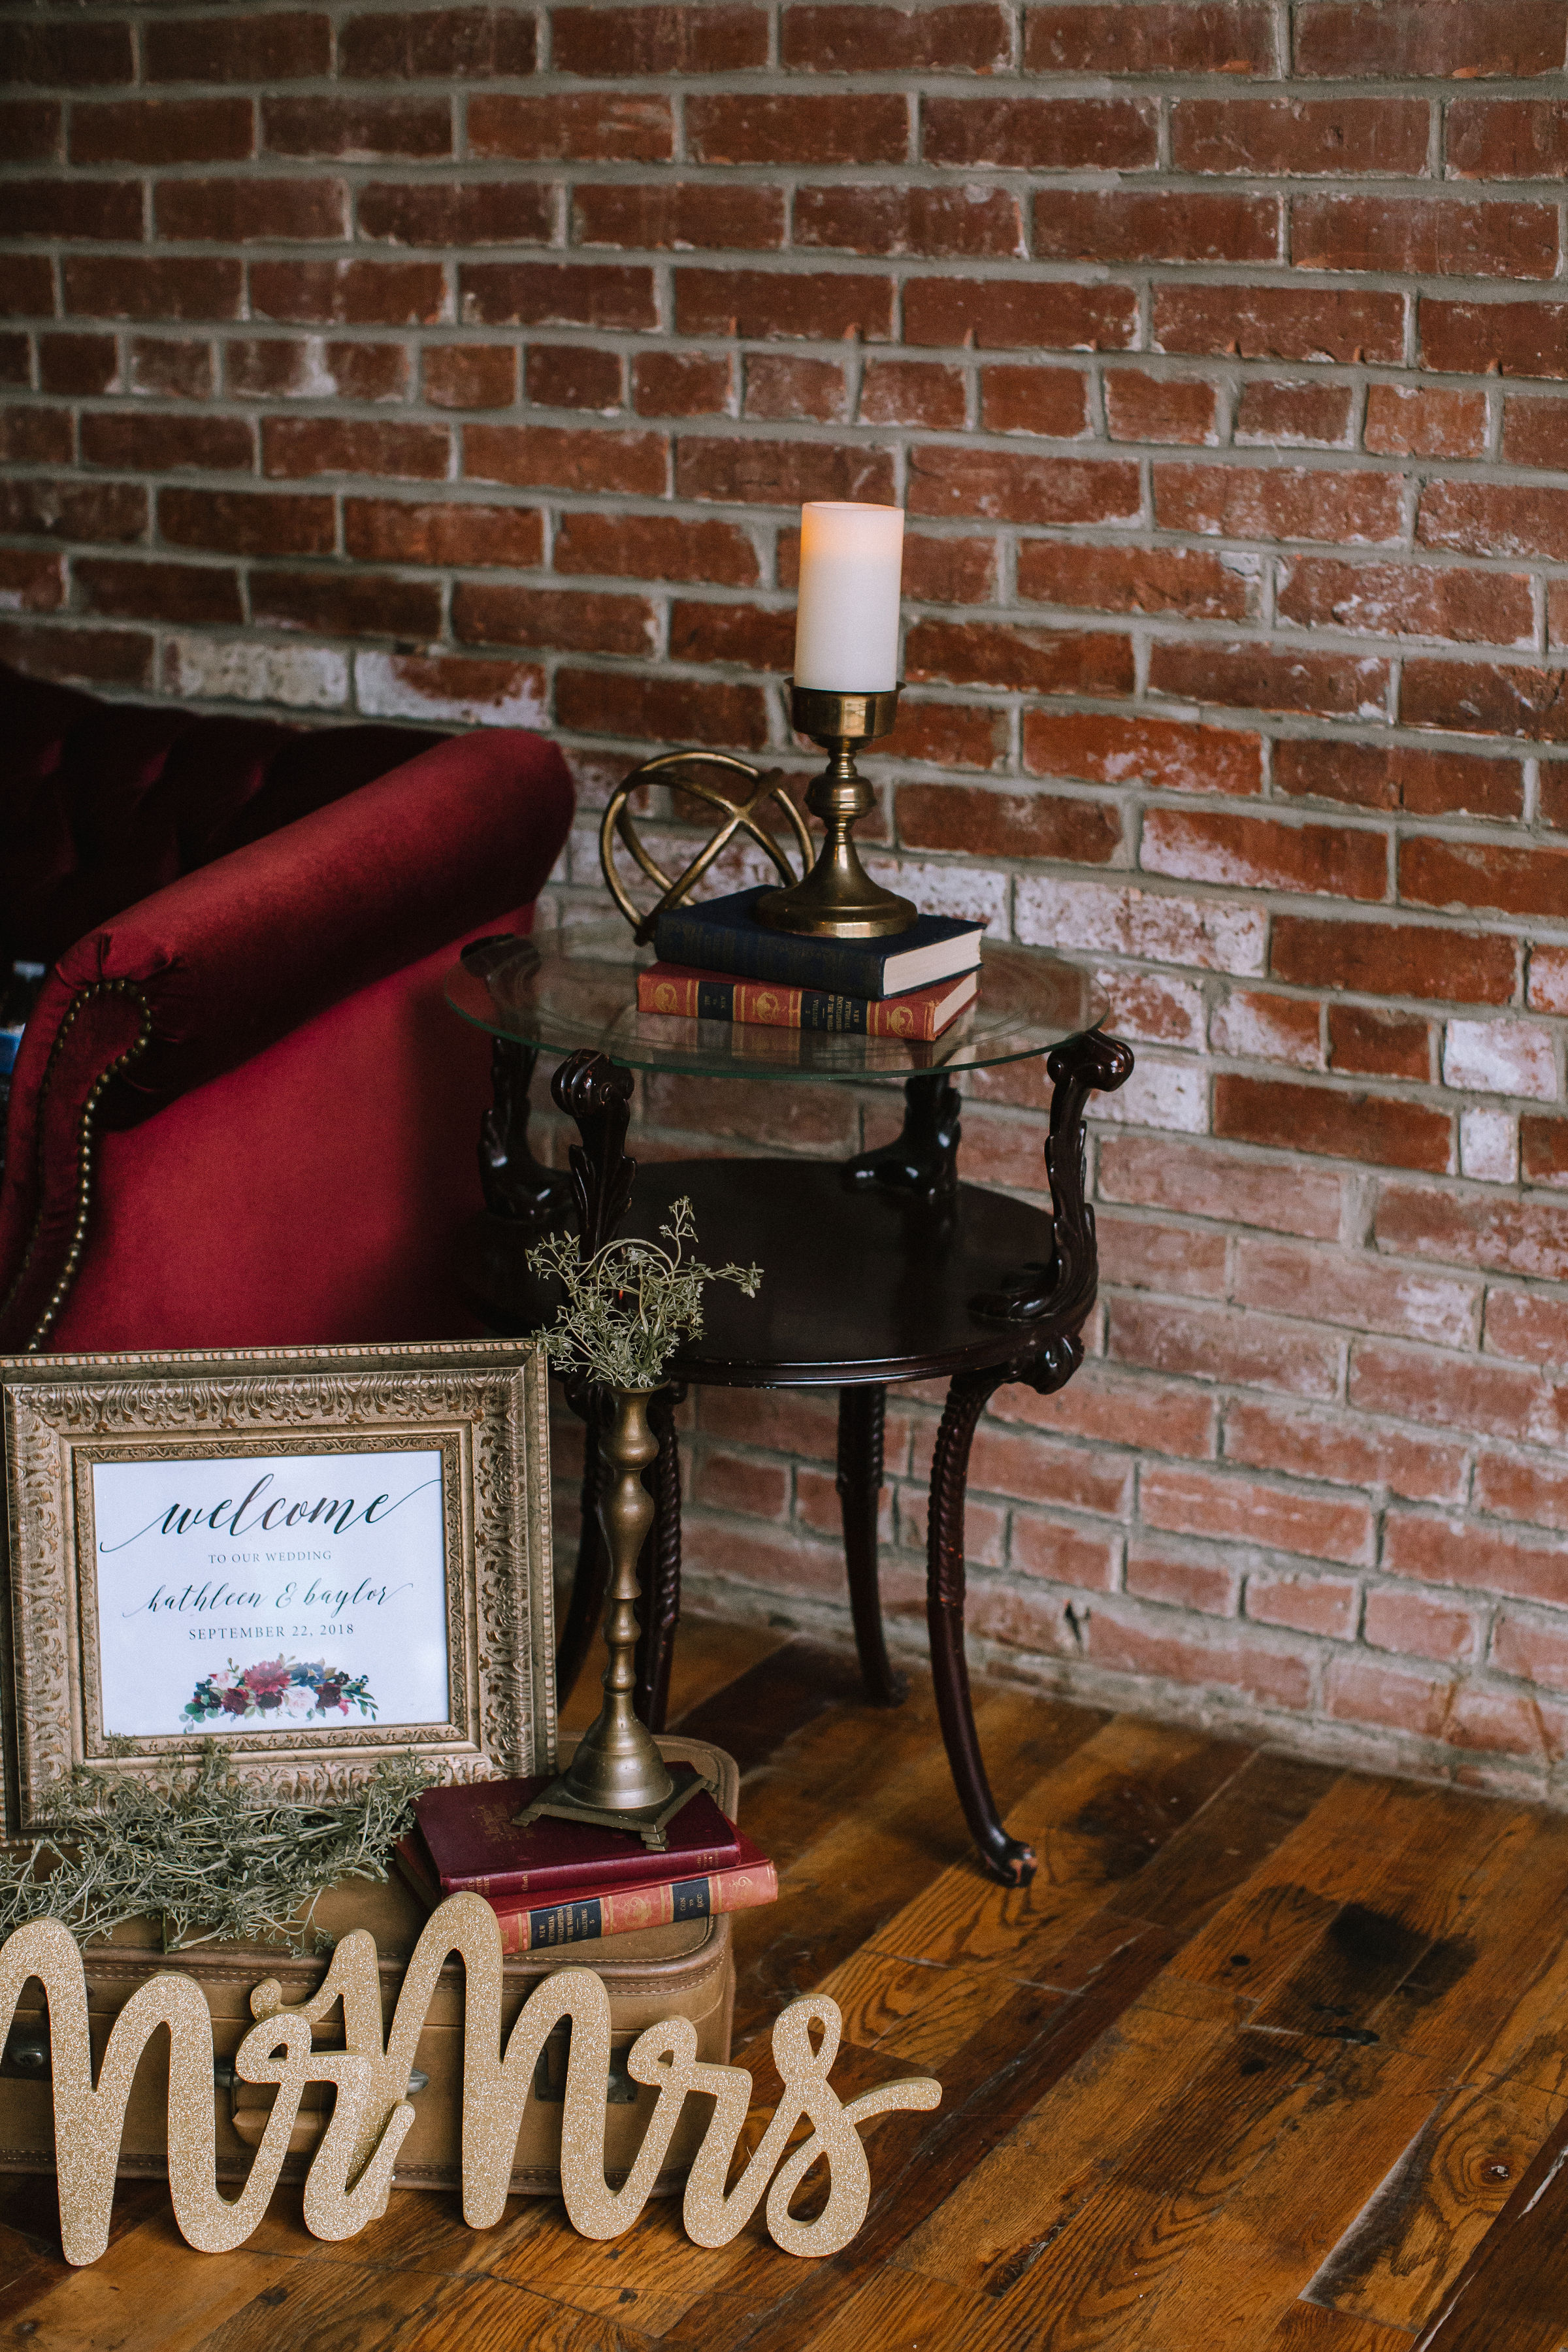 Vintage wedding decor for Pittsburgh wedding at Studio Slate planned by Exhale Events. Find more wedding inspiration at exhale-events.com!